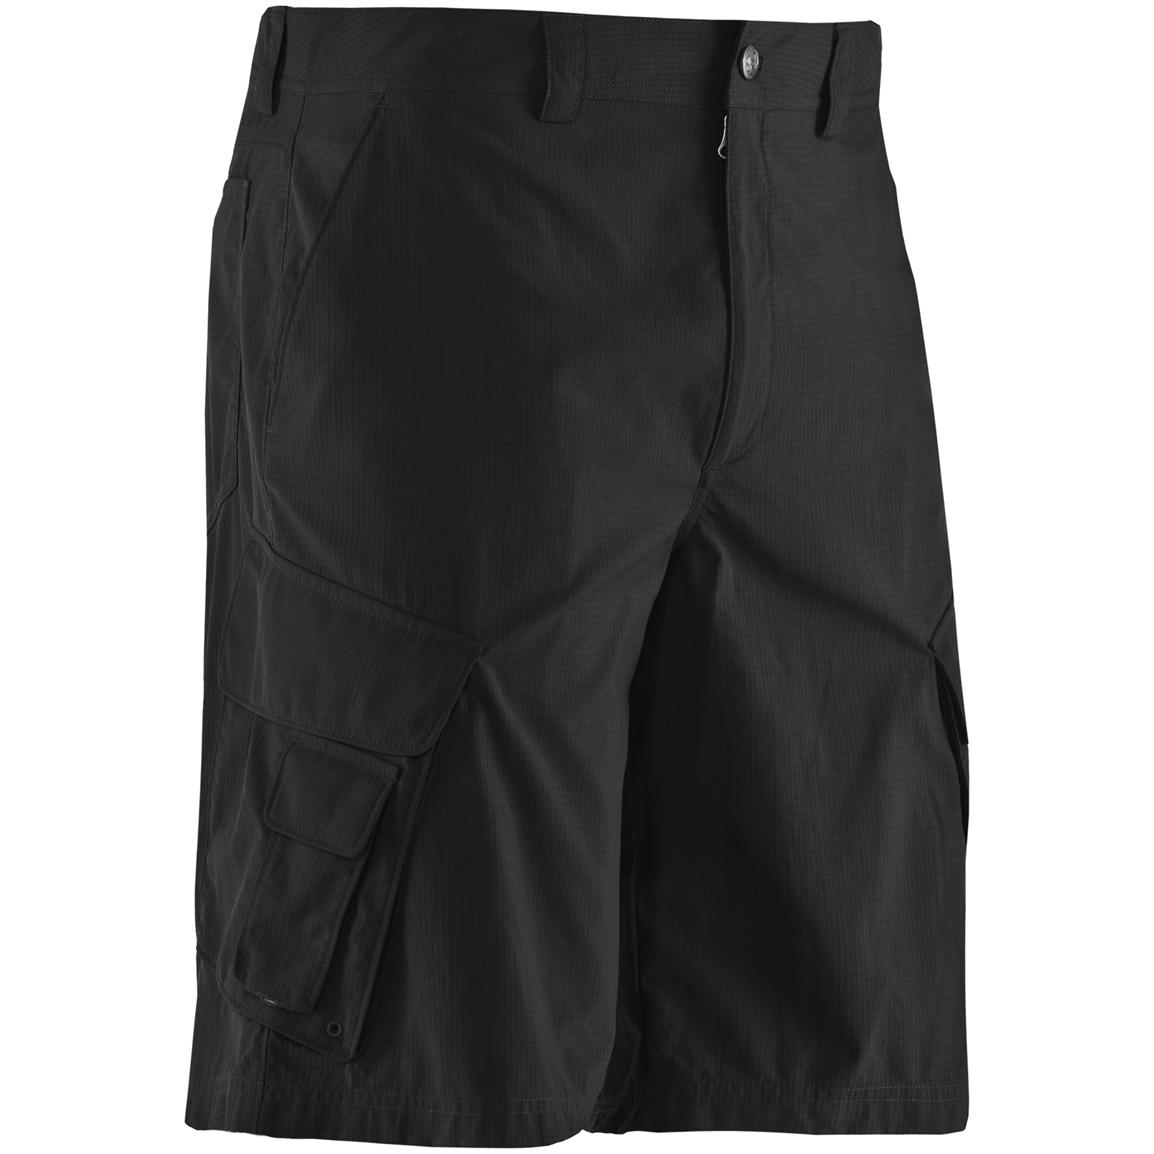 Men's Under Armour® Guide Shorts, Black